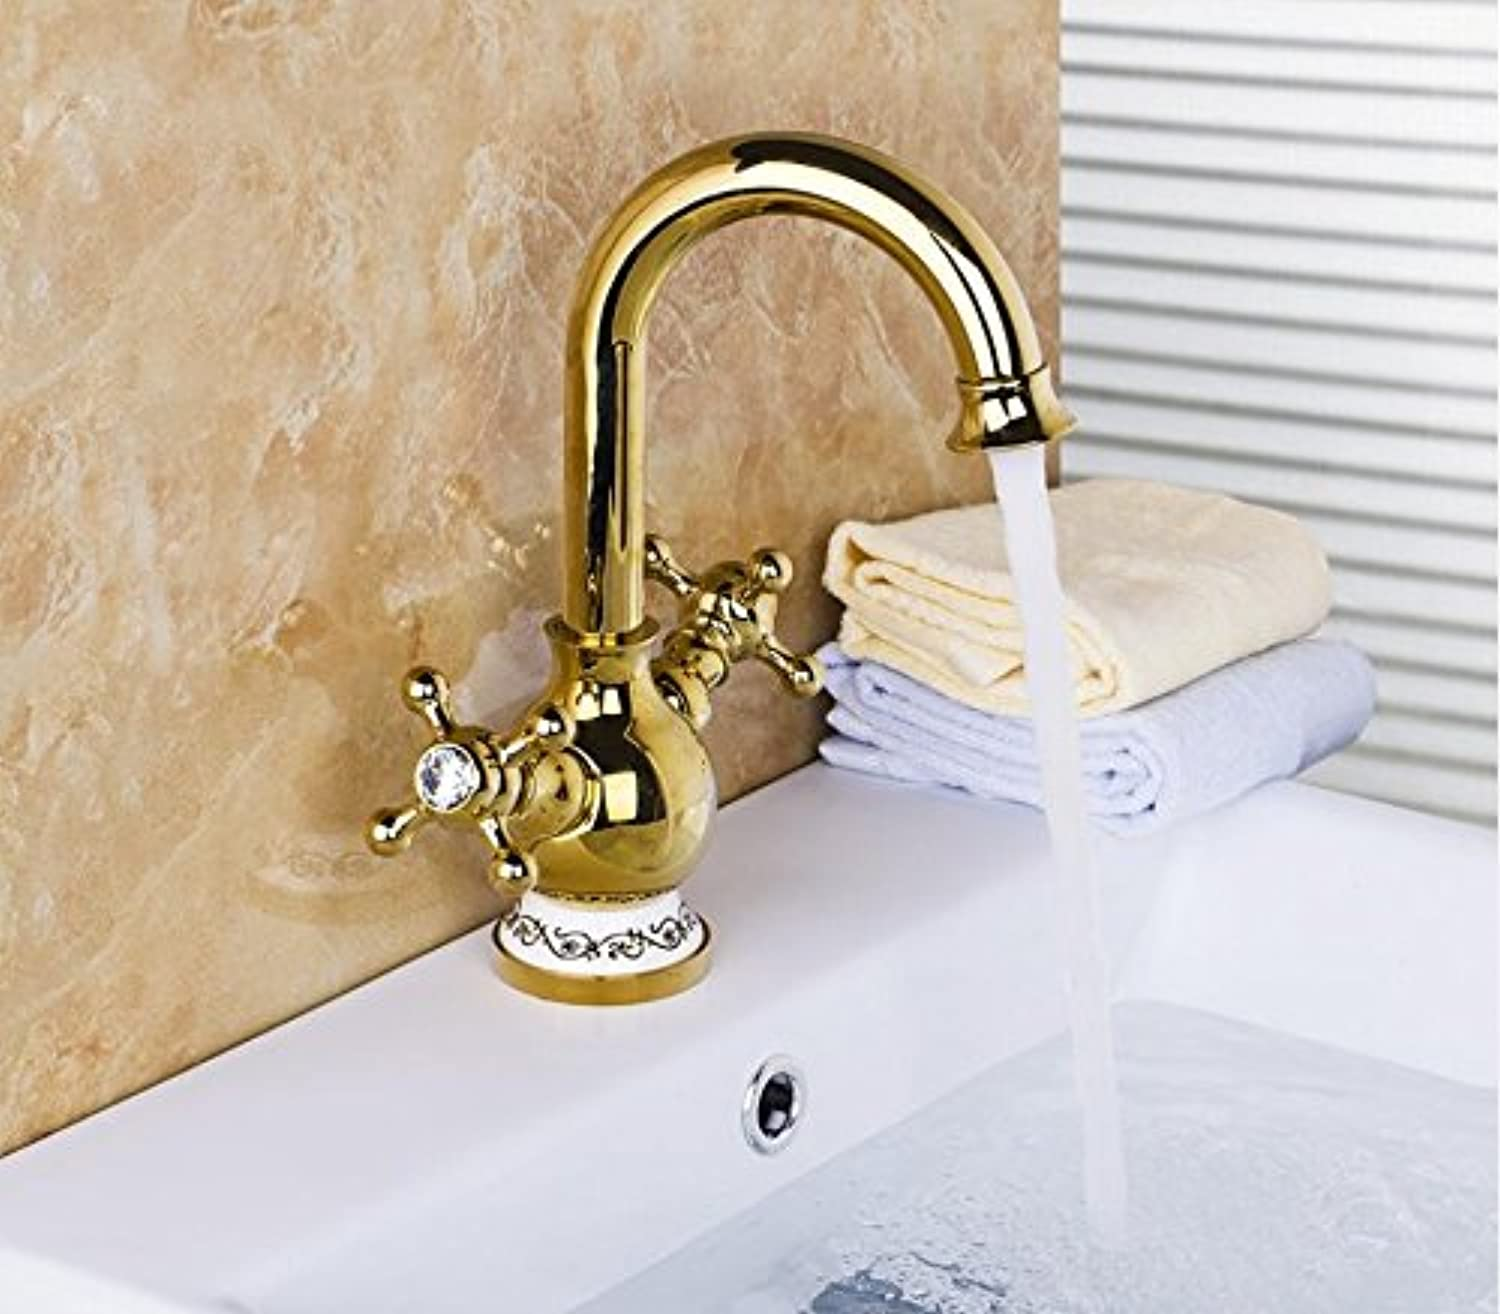 Makej golden Dual Handle Basin Faucet Single Hole Deck Mounted Hot Cold Water Mixer Tap